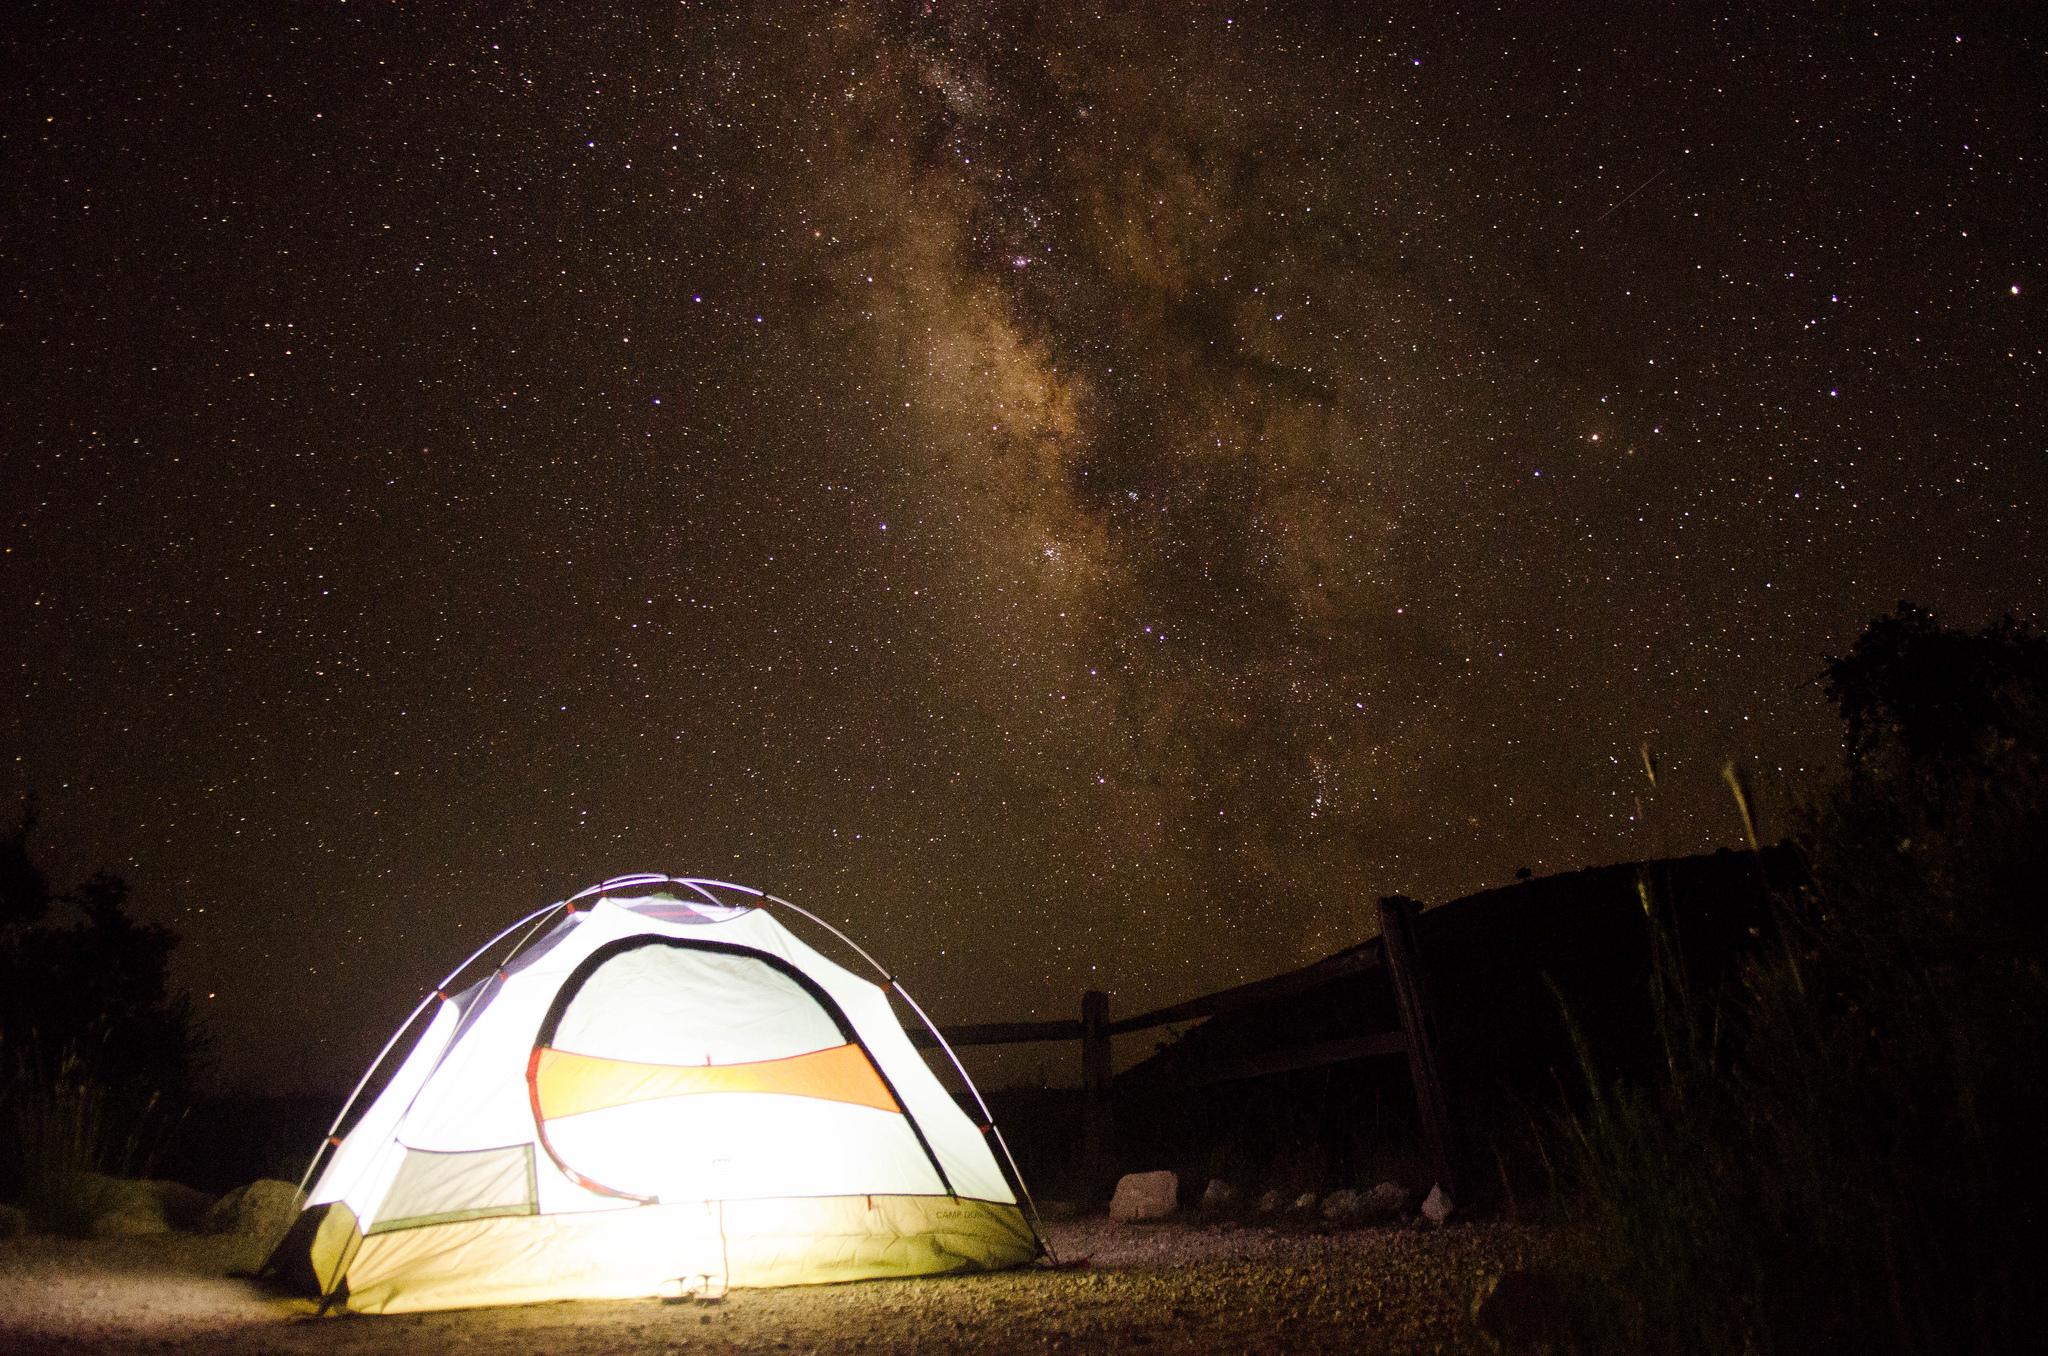 The Best Campsites and Glampsites in South Korea